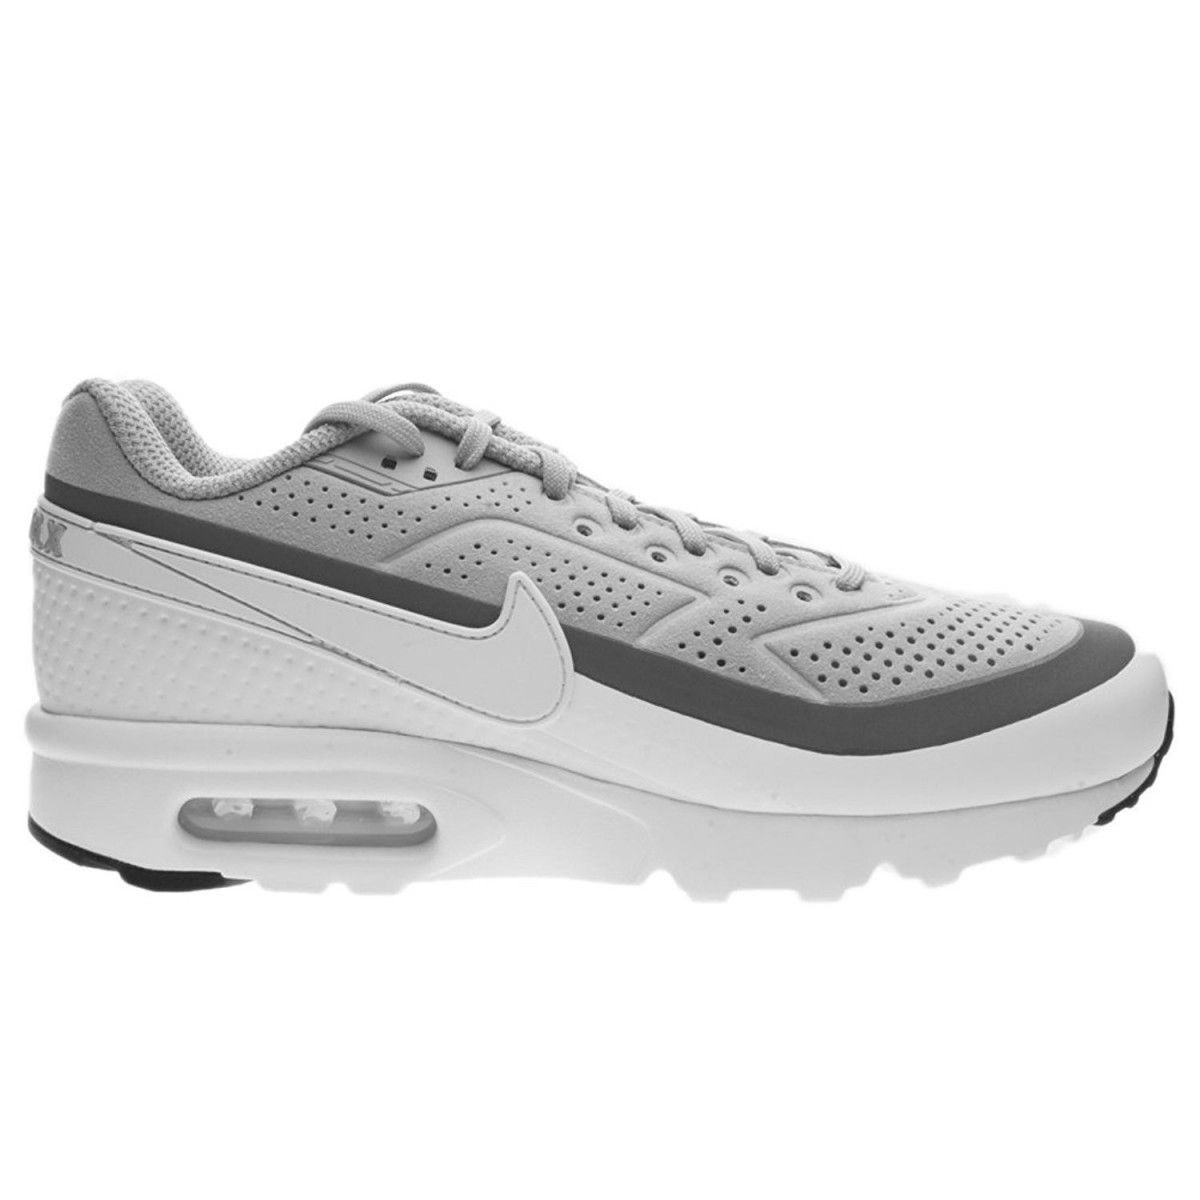 Air Moire In Max Ultra Nike 2019Products Bw Basket xhCQtsrd